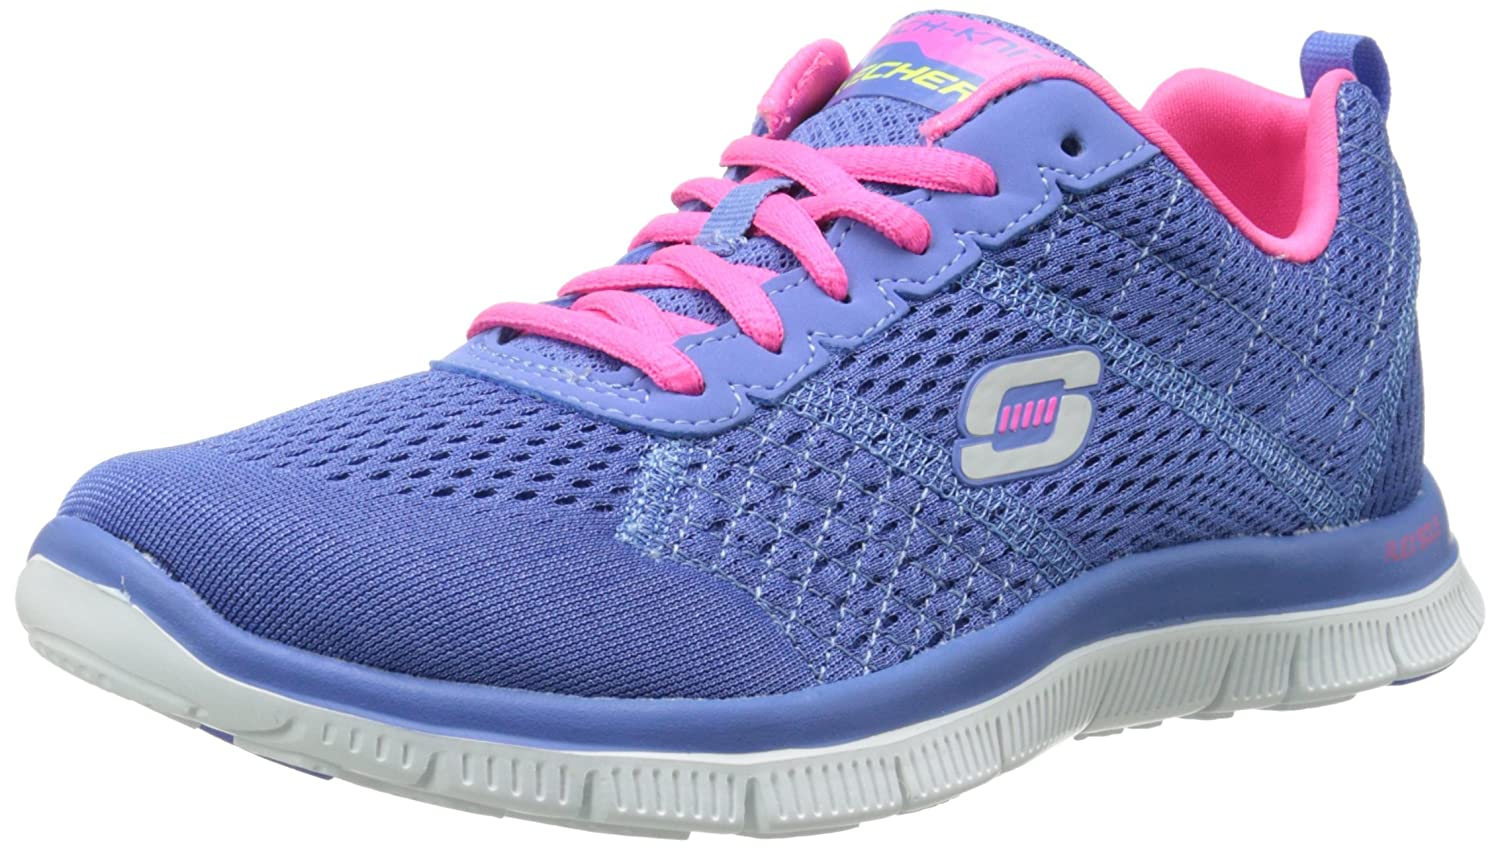 Skechers obvious choice flex sole sneakers